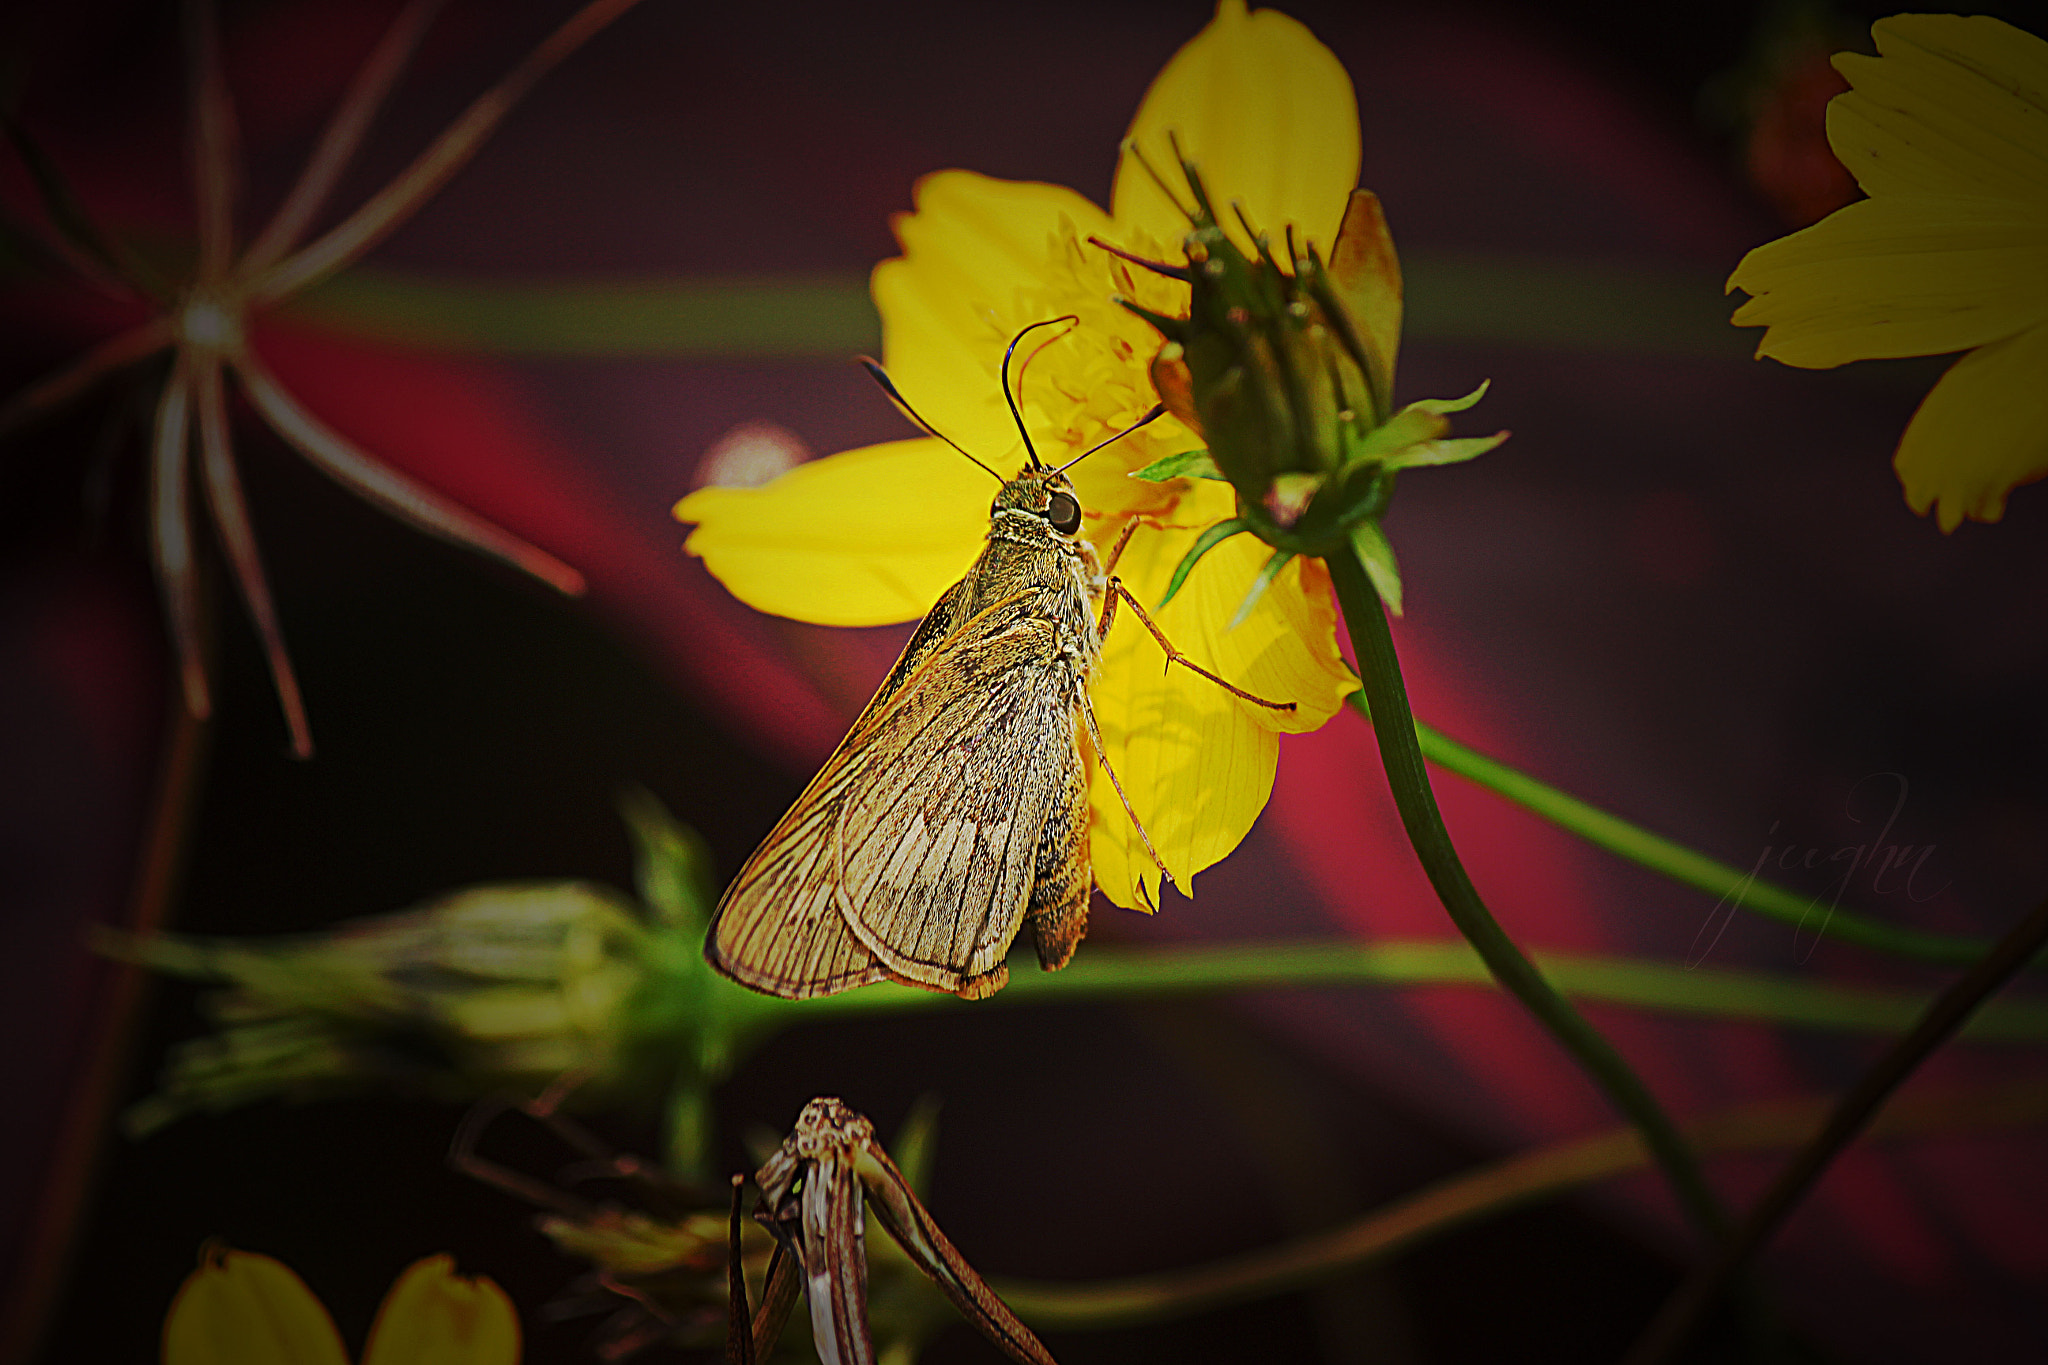 Photograph Moth & a Cosmos Flower by jughnguevarra on 500px